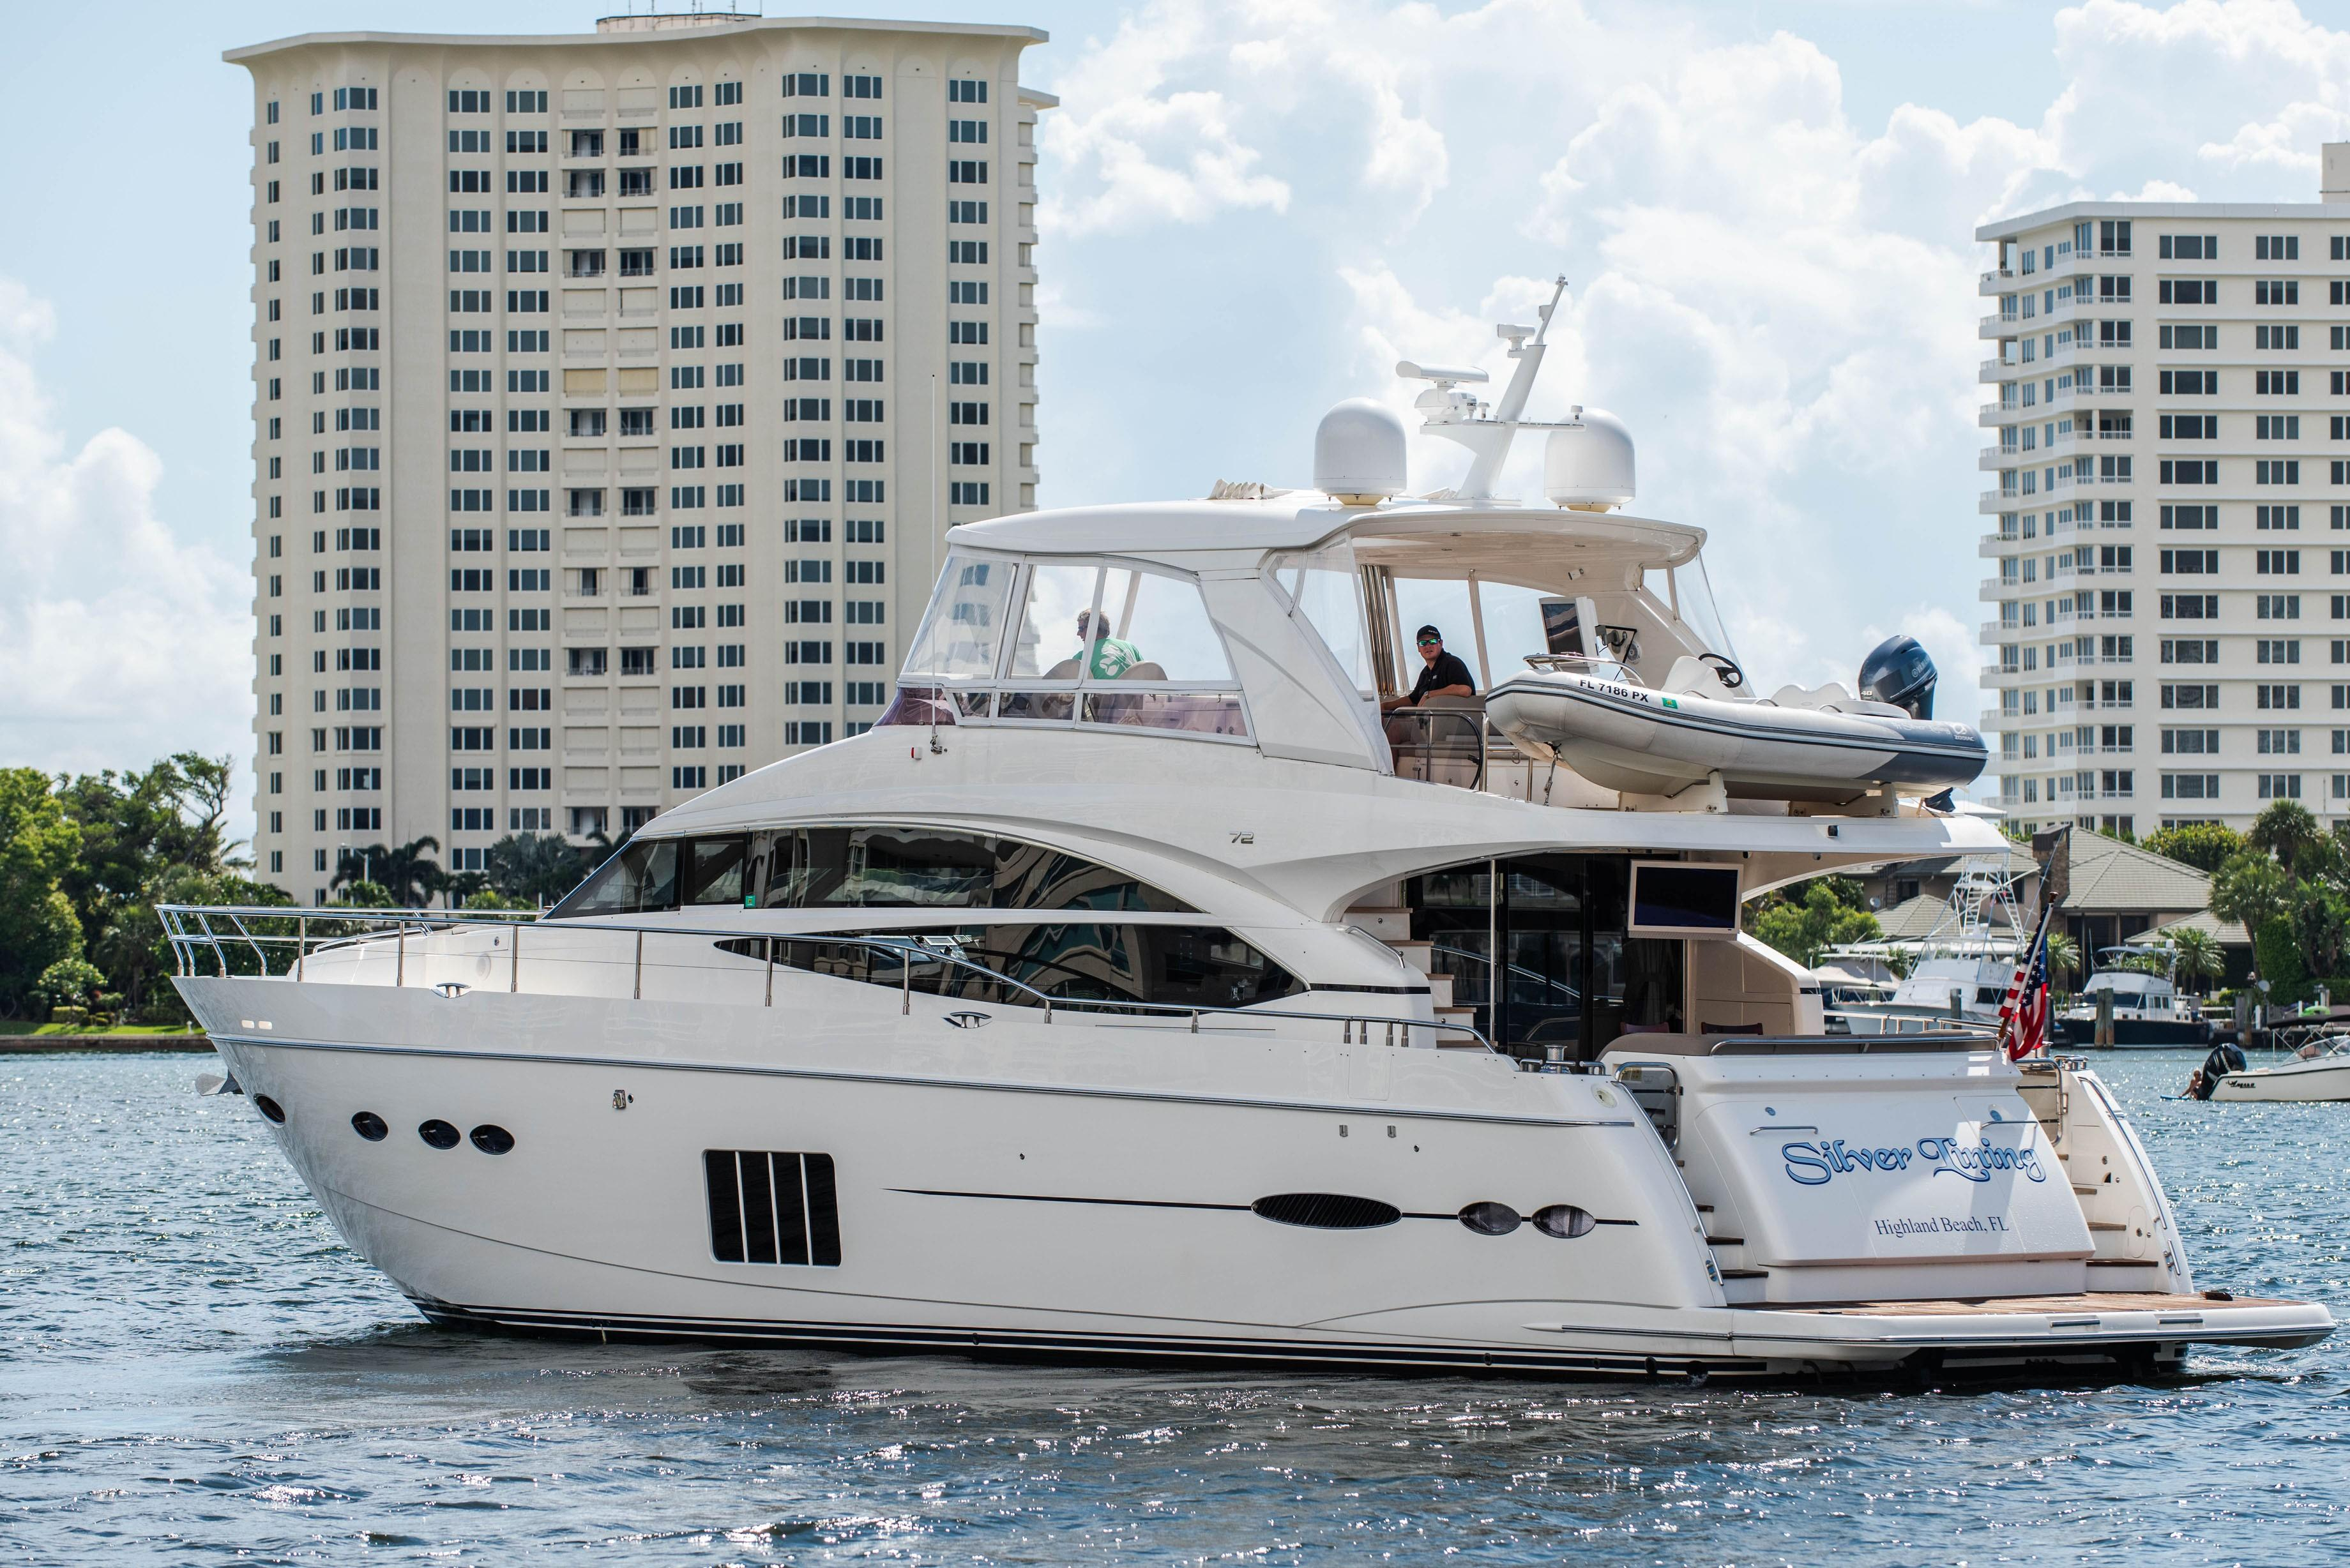 2013 Princess 72 Motor Yacht Yacht For Sale | Silver Lining